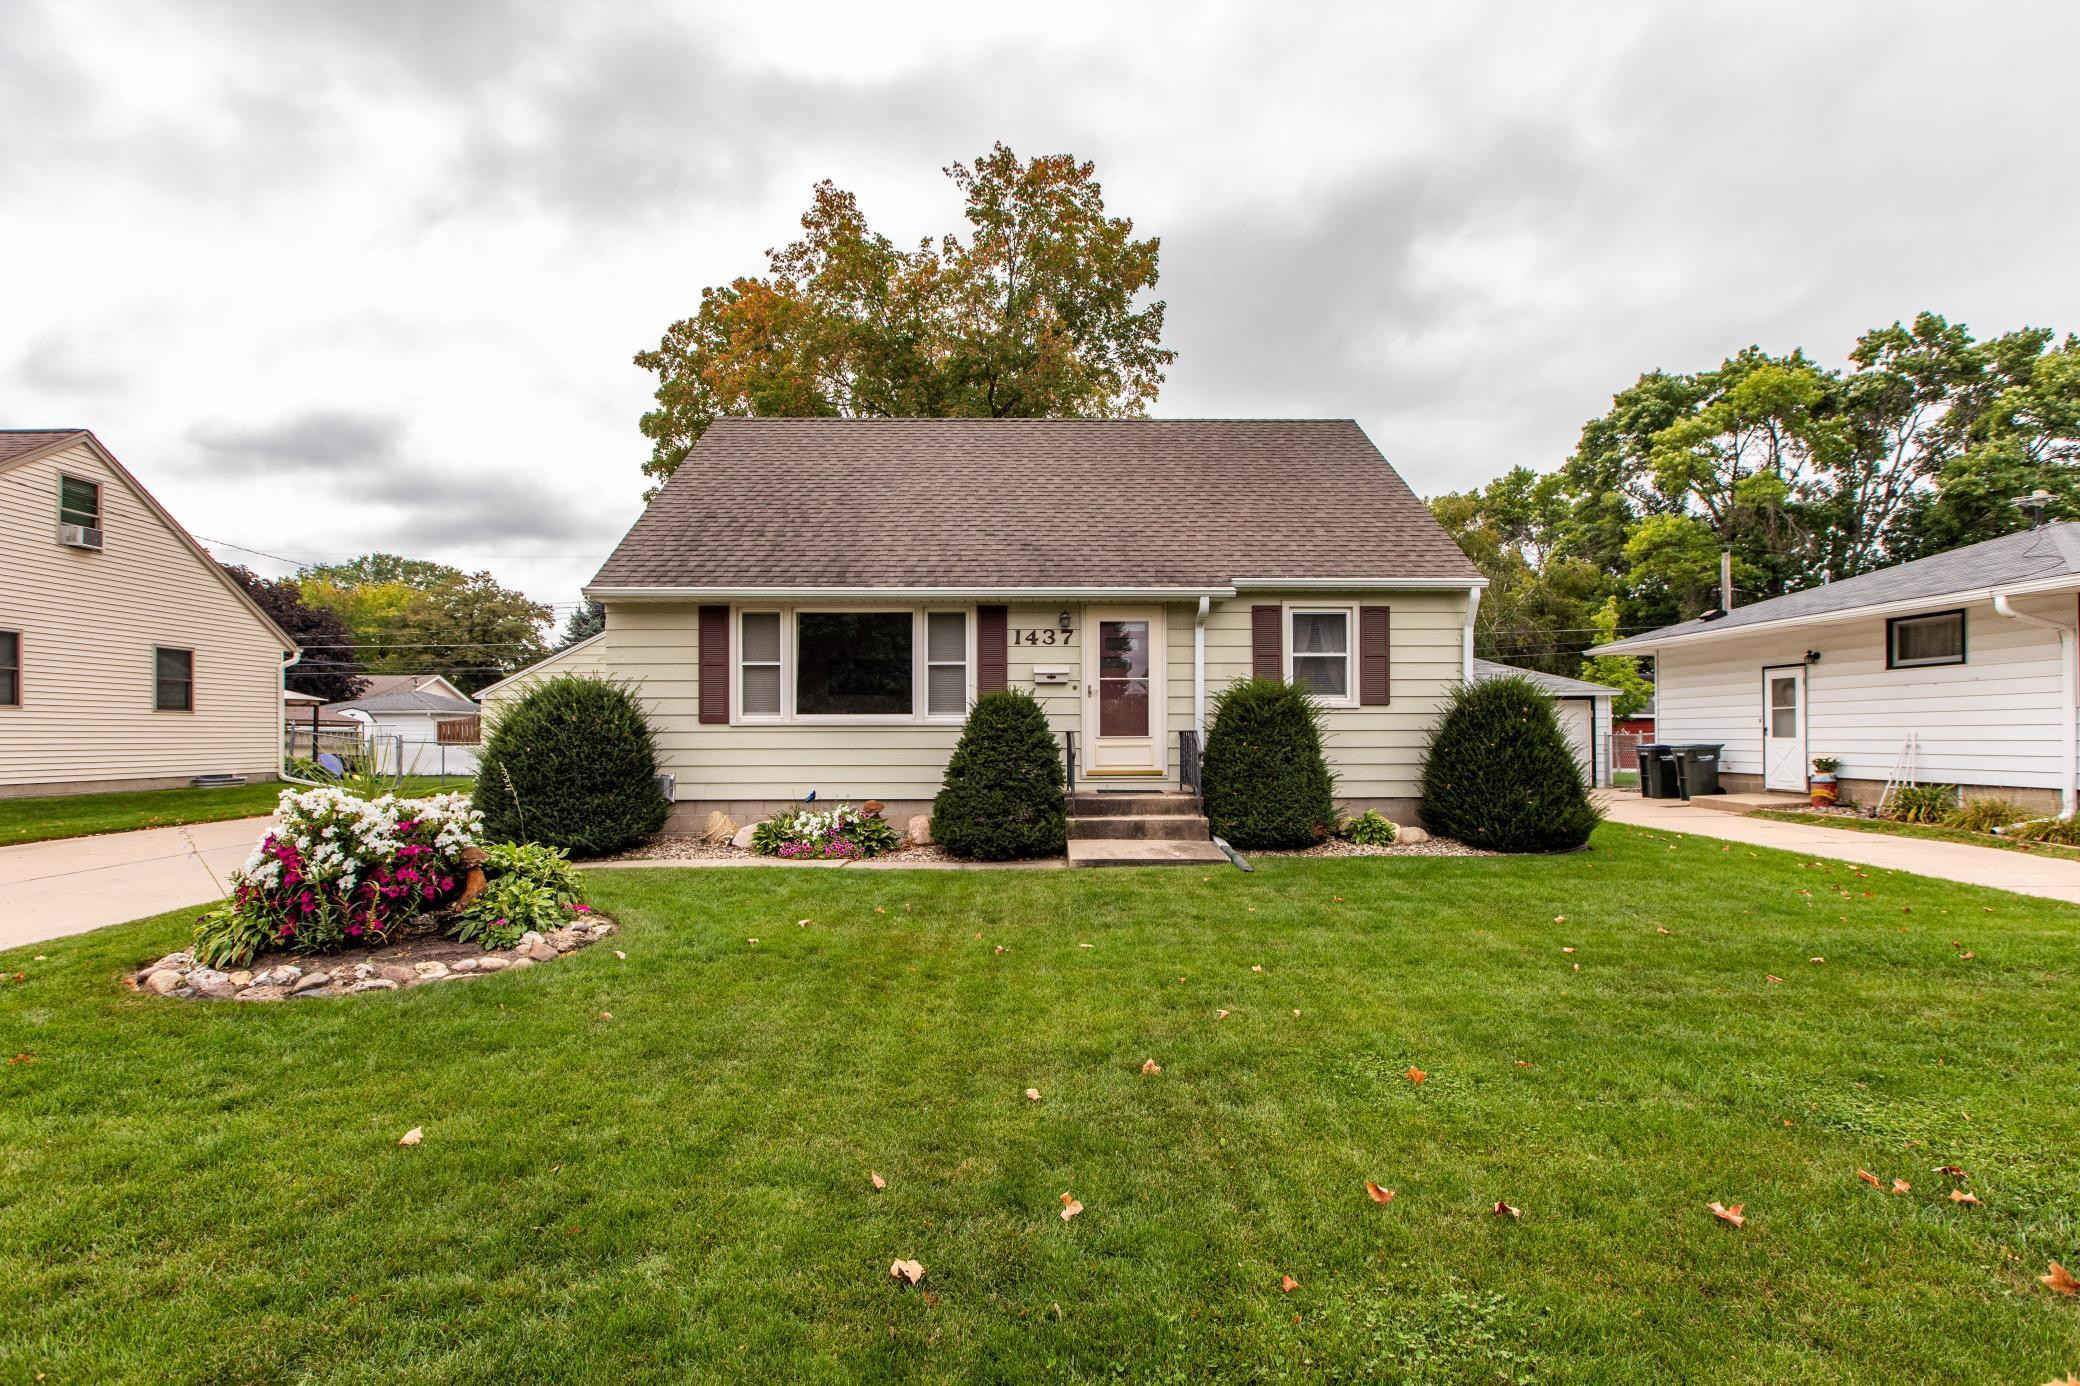 1437 2nd Avenue SW, Rochester, MN 55902